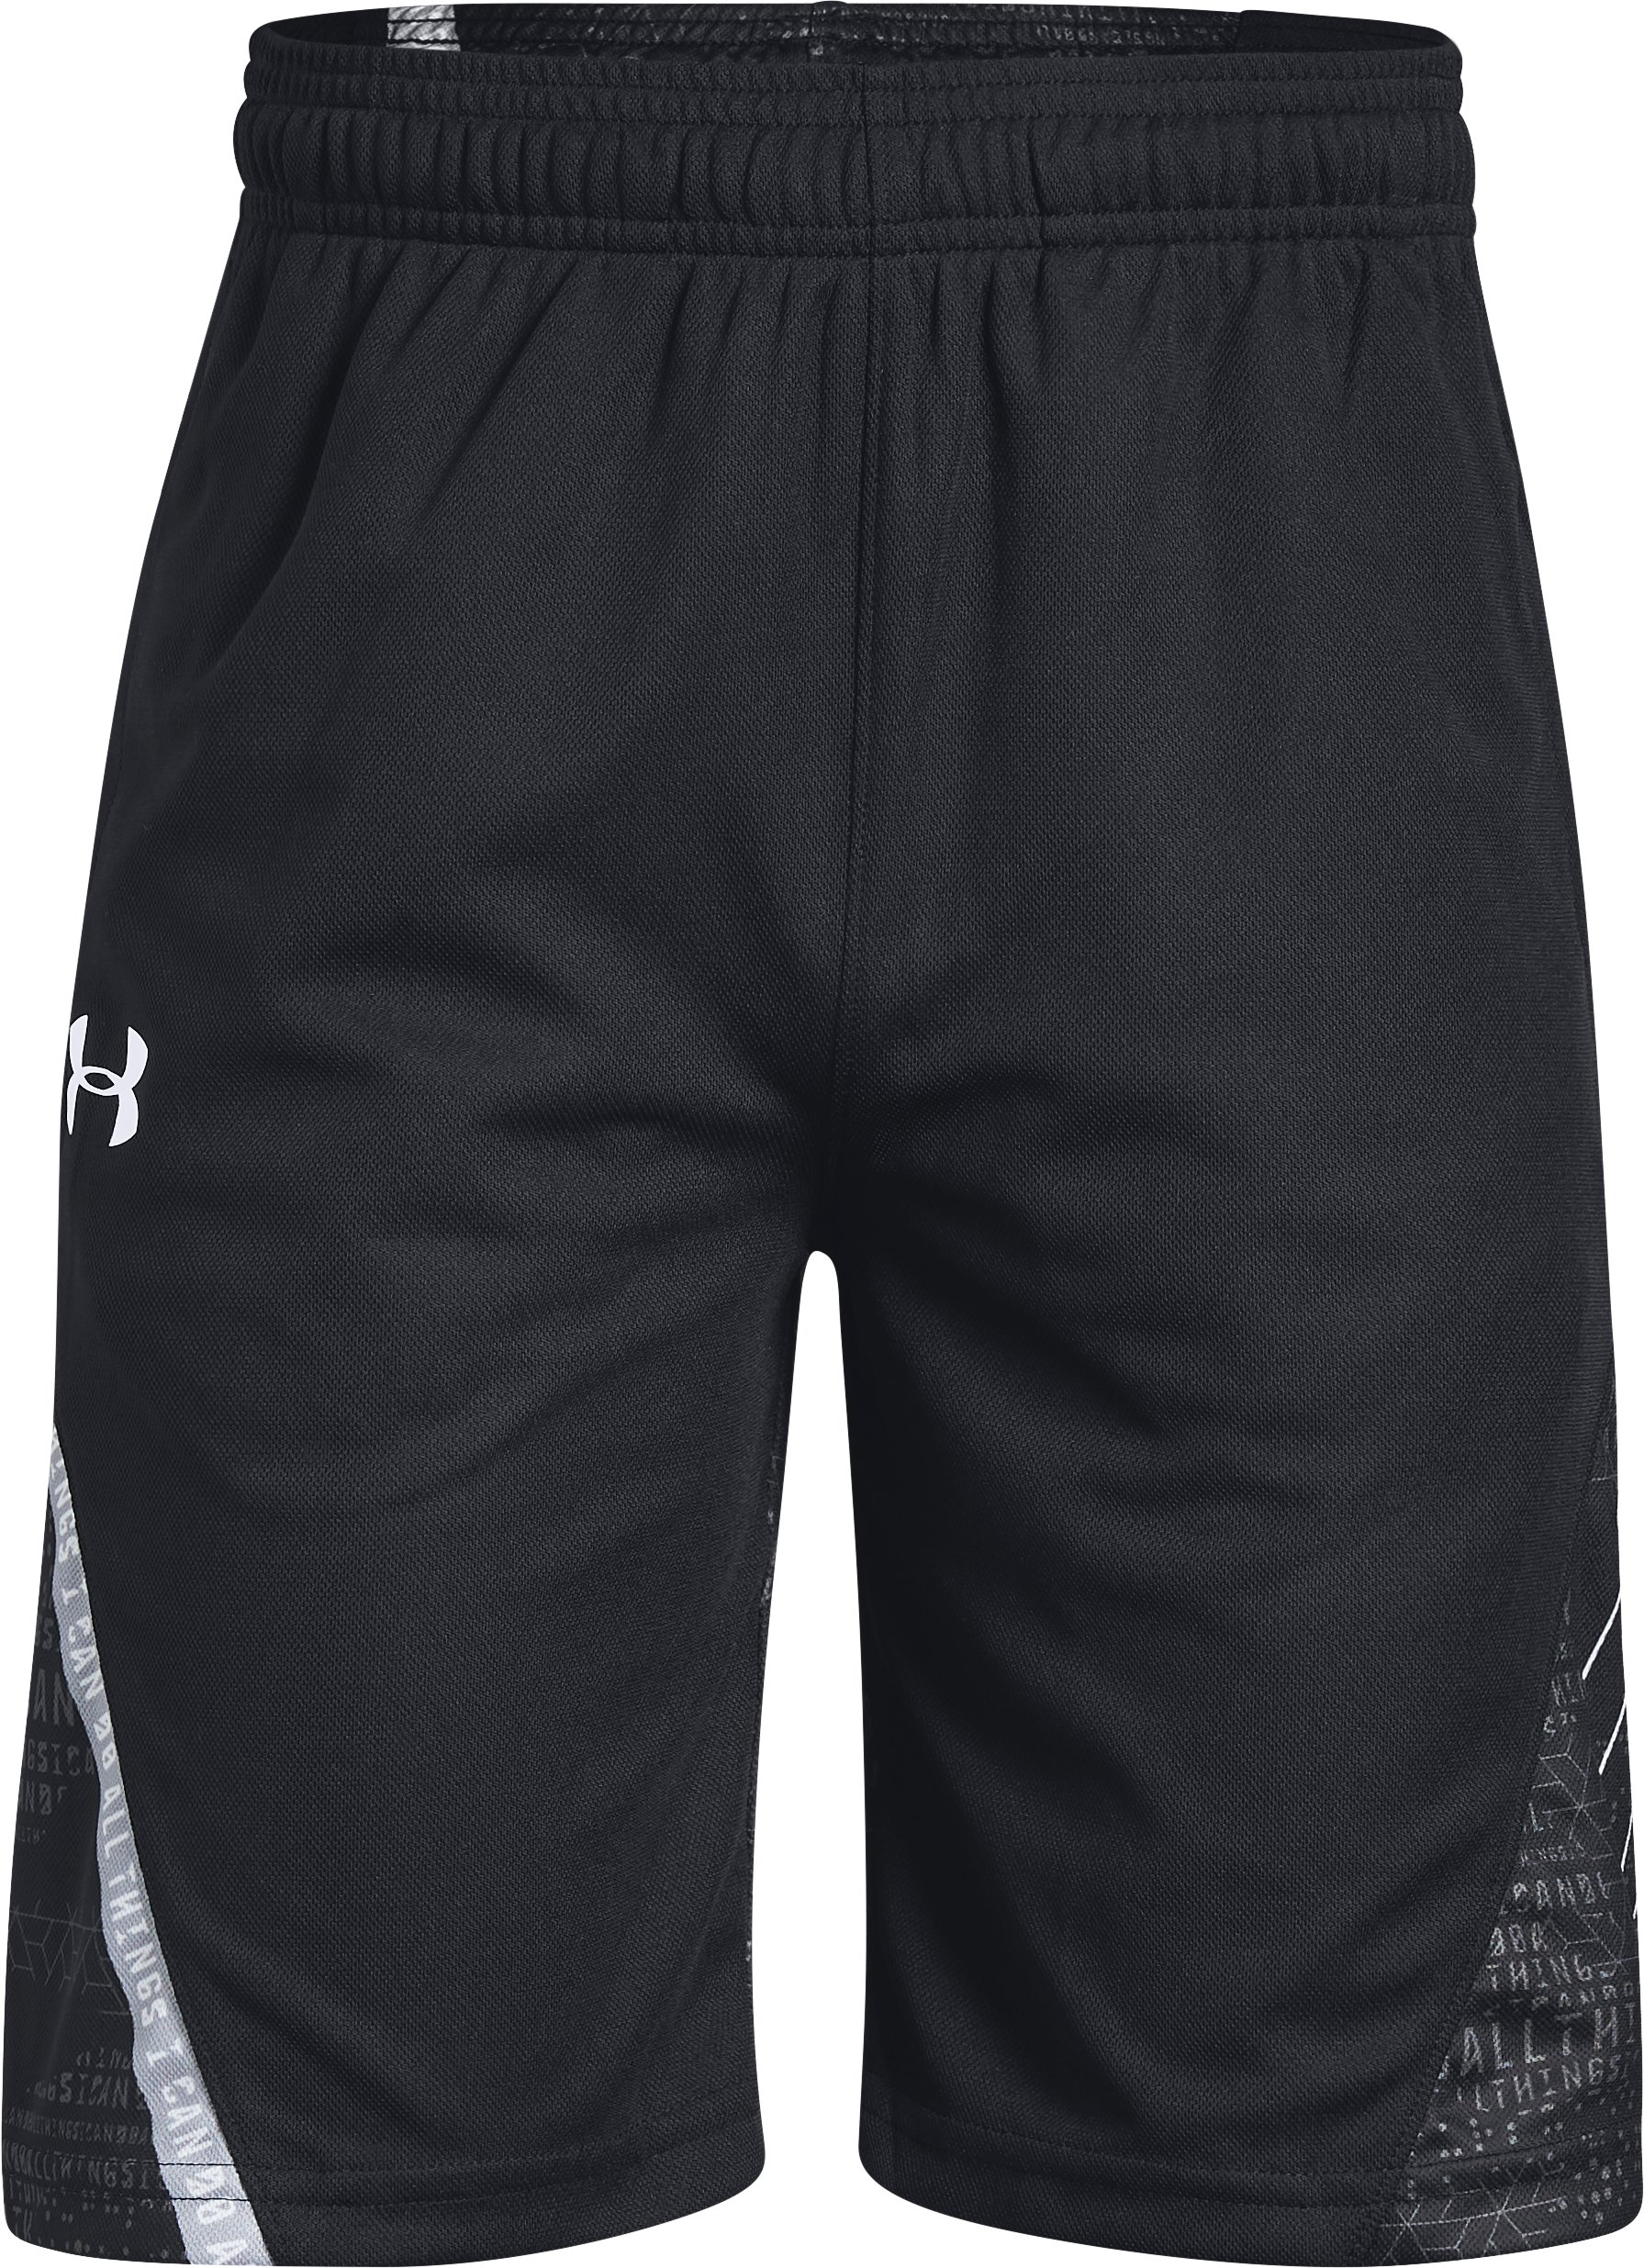 Boys' SC30 Shorts, Black ,